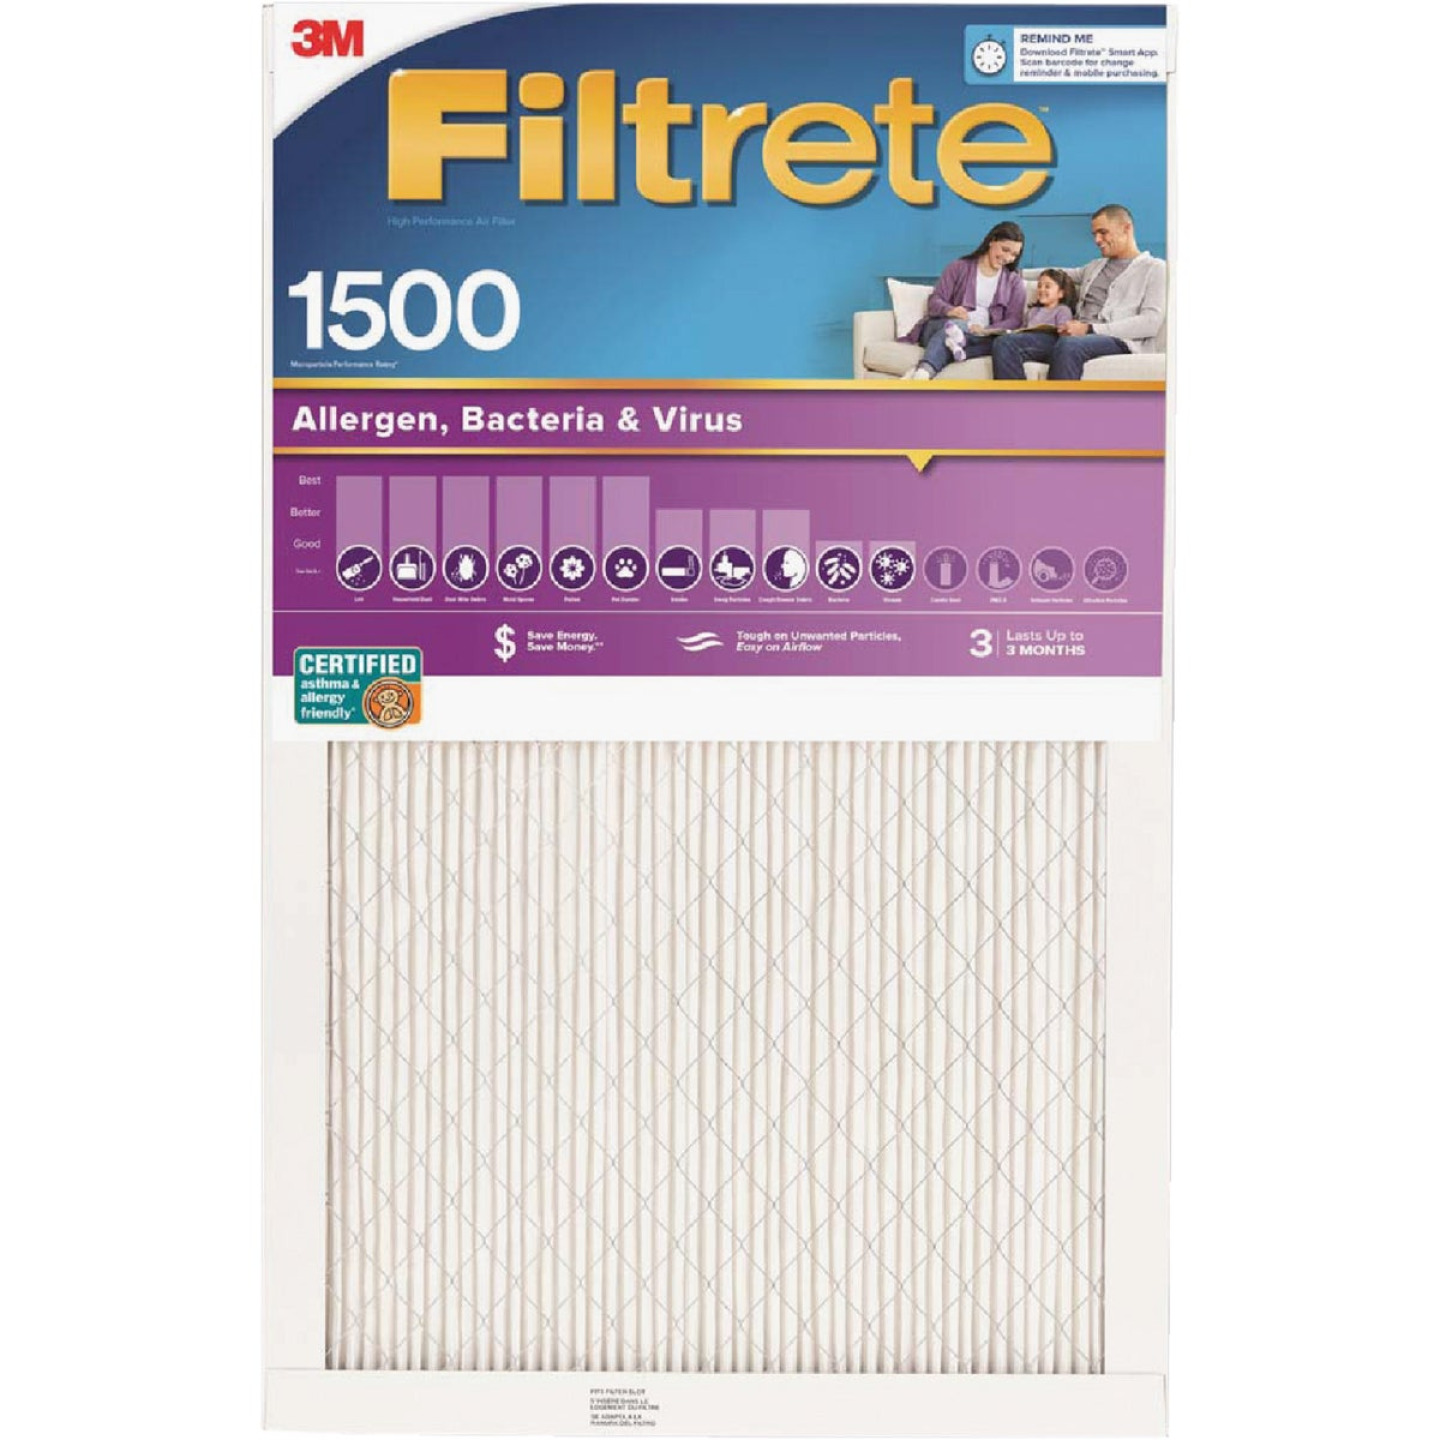 3M Filtrete 20 In. x 20 In. x 1 In. Ultra Allergen Healthy Living 1550 MPR Furnace Filter Image 1